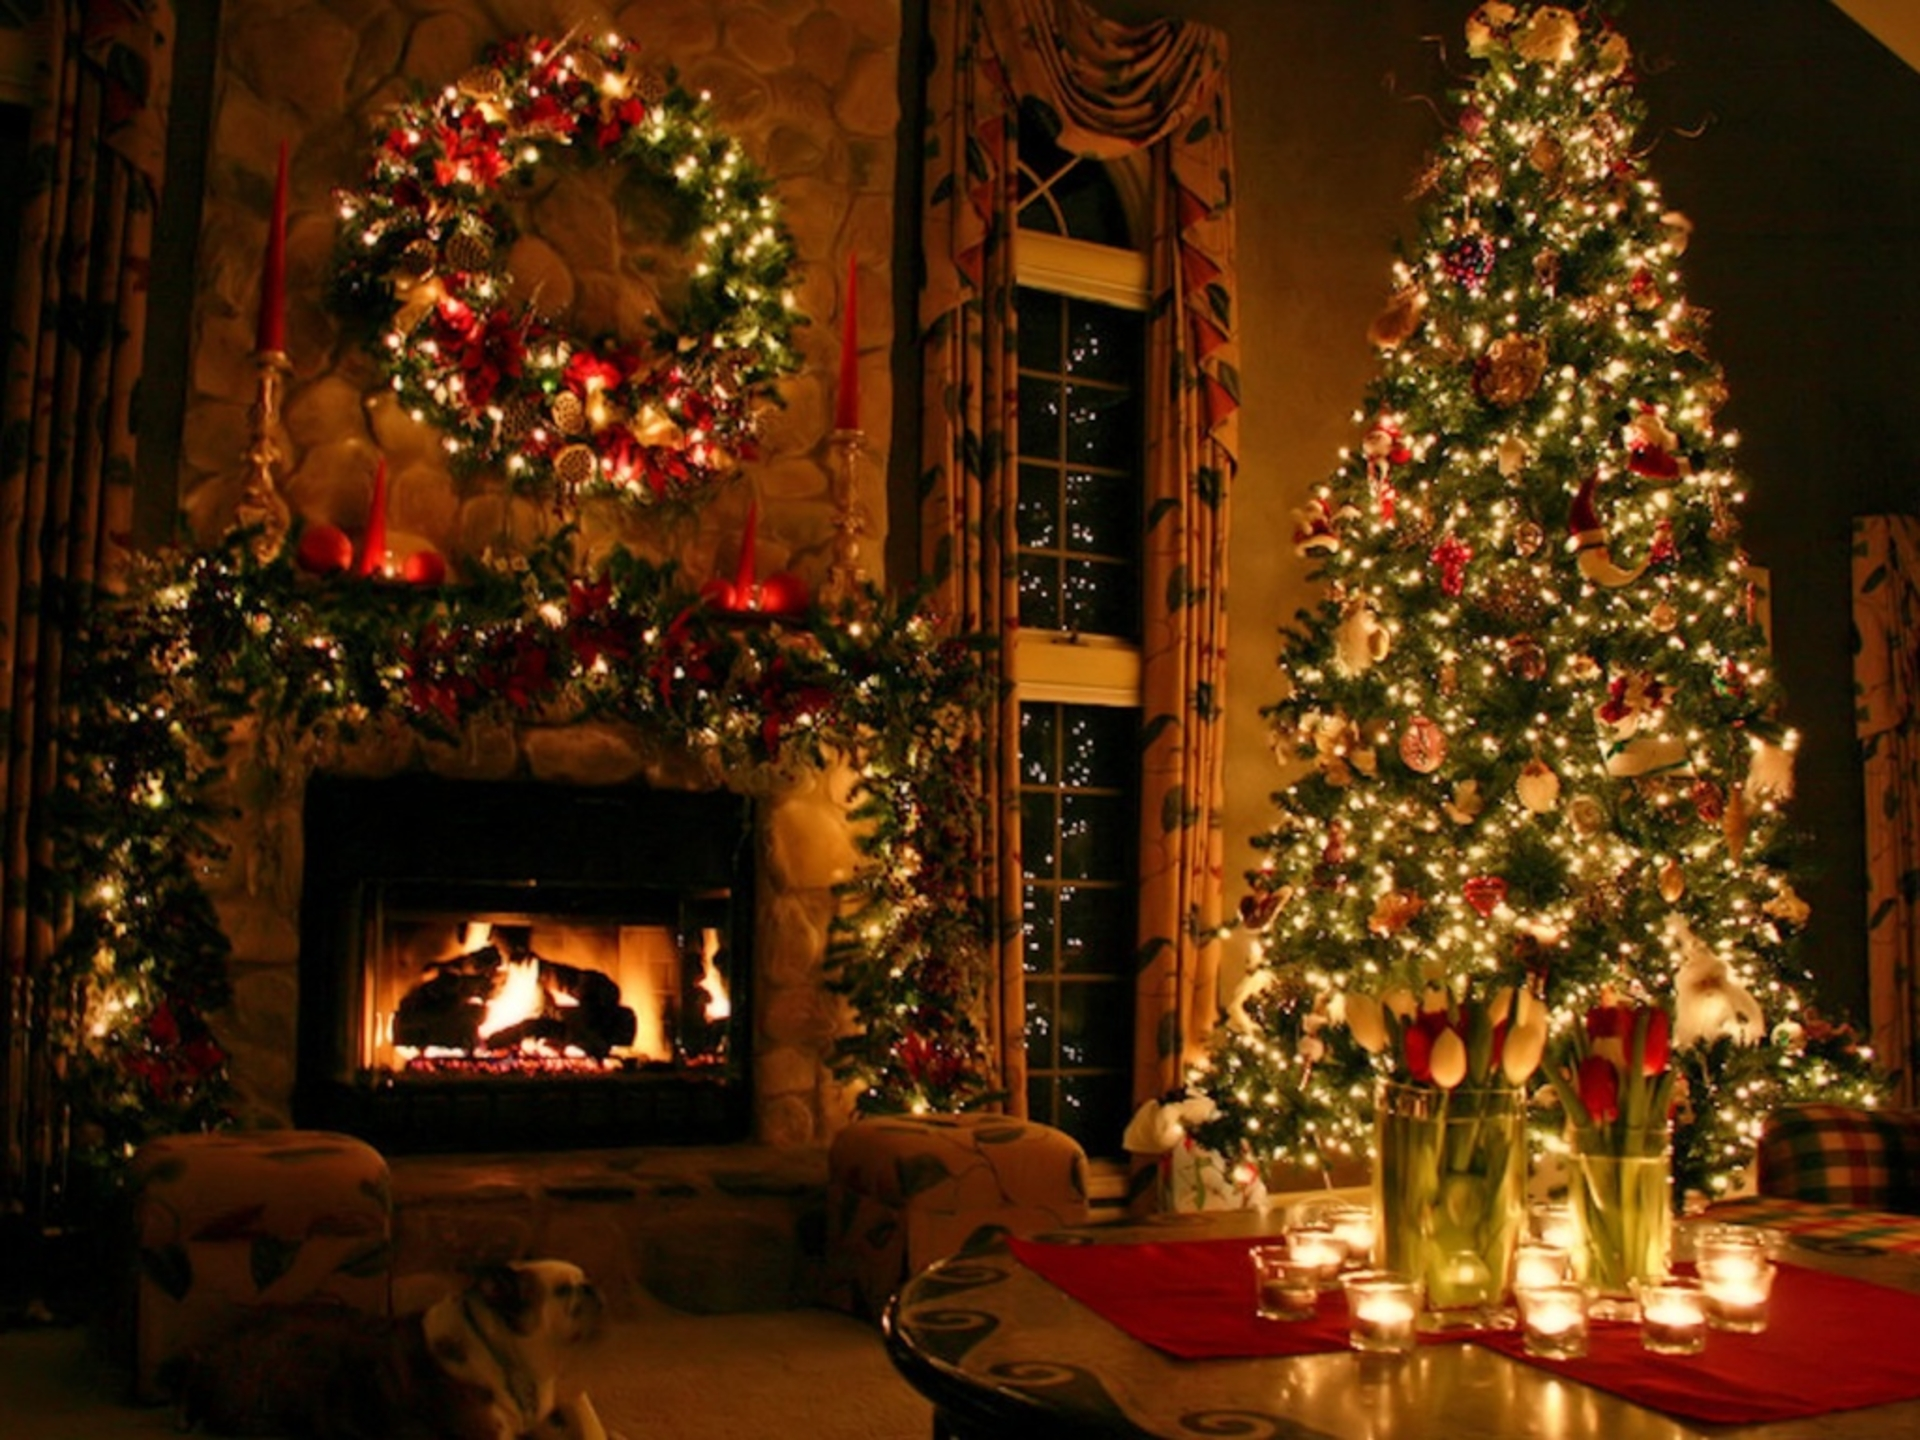 Christmas fireplace fire holiday festive decorations hx for Decoration wallpaper